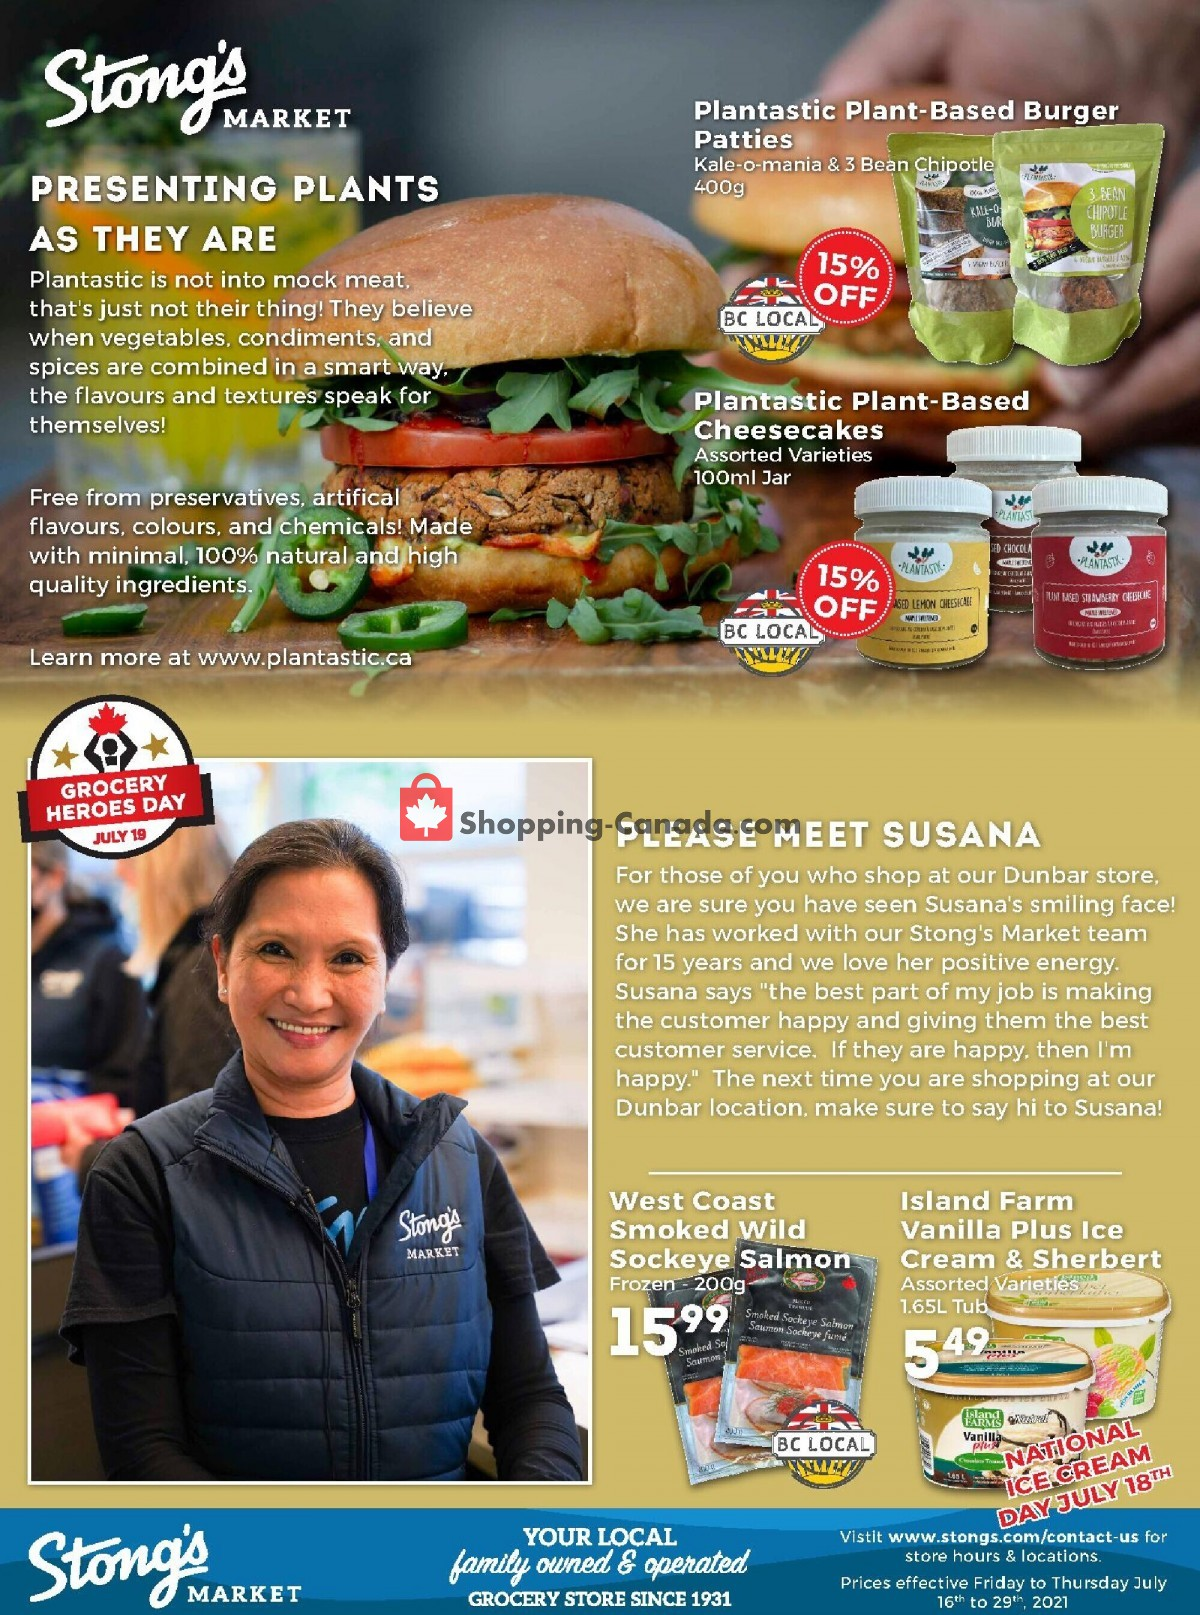 Flyer Stong's Market Canada - from Friday July 16, 2021 to Thursday July 29, 2021